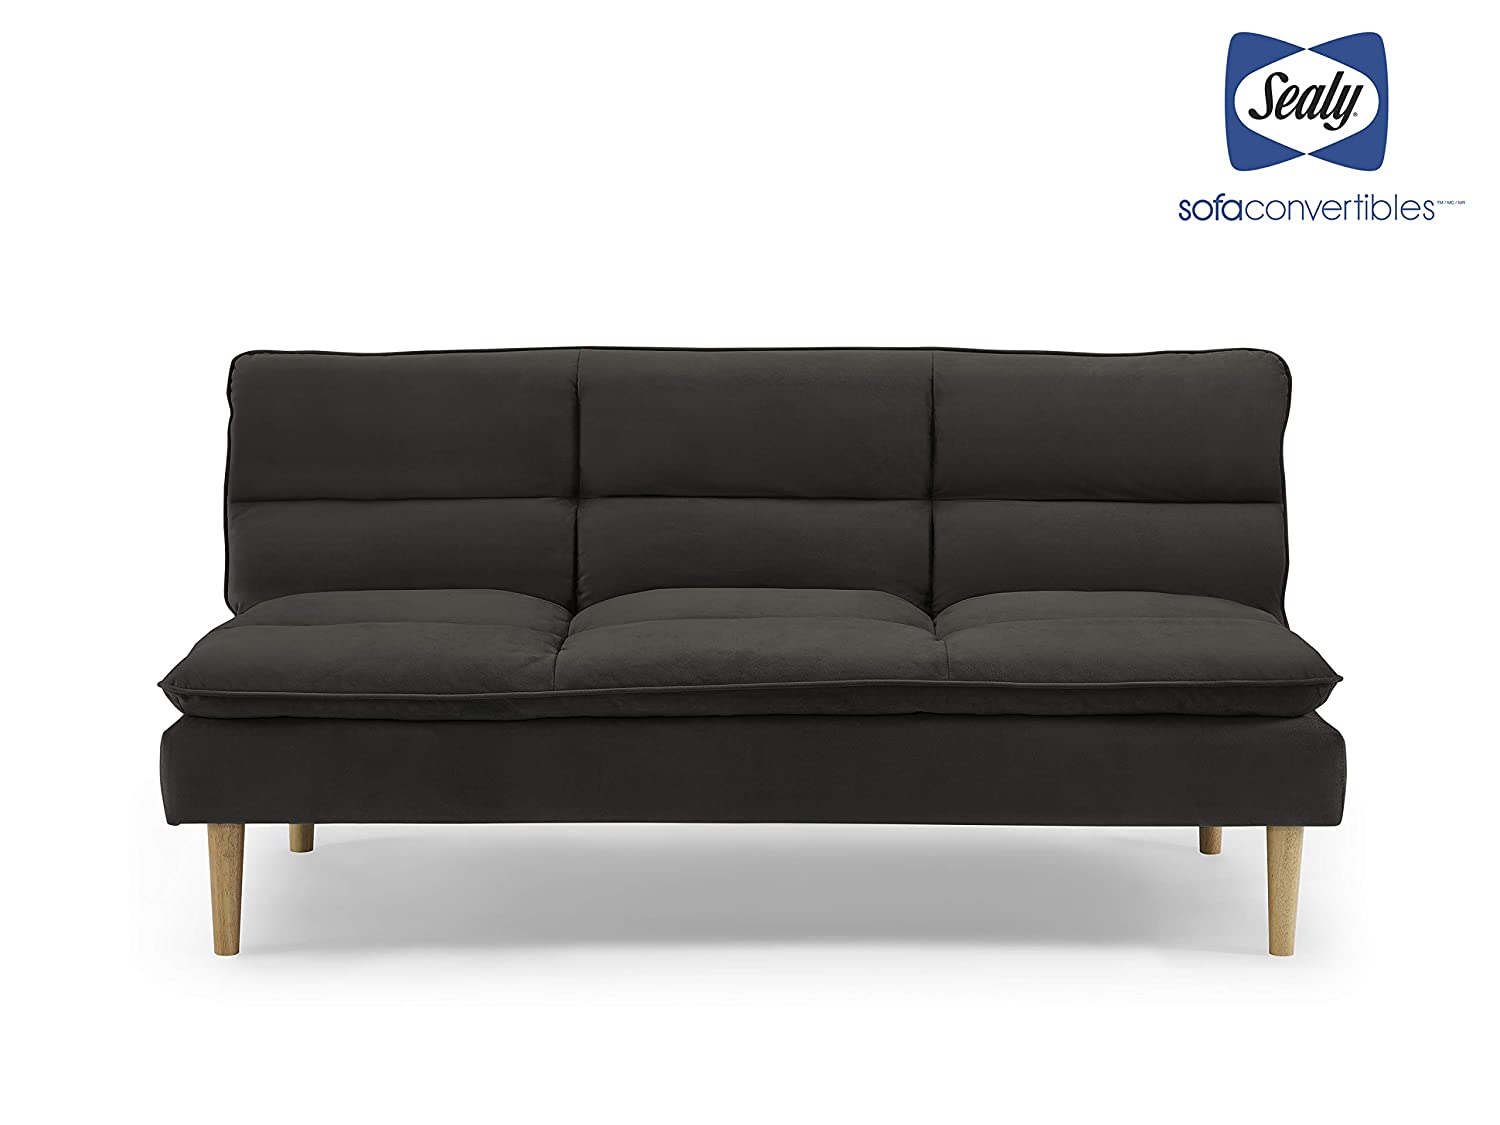 Heavenly Granite Sealy Monterey Sofa Convertible by Sealy